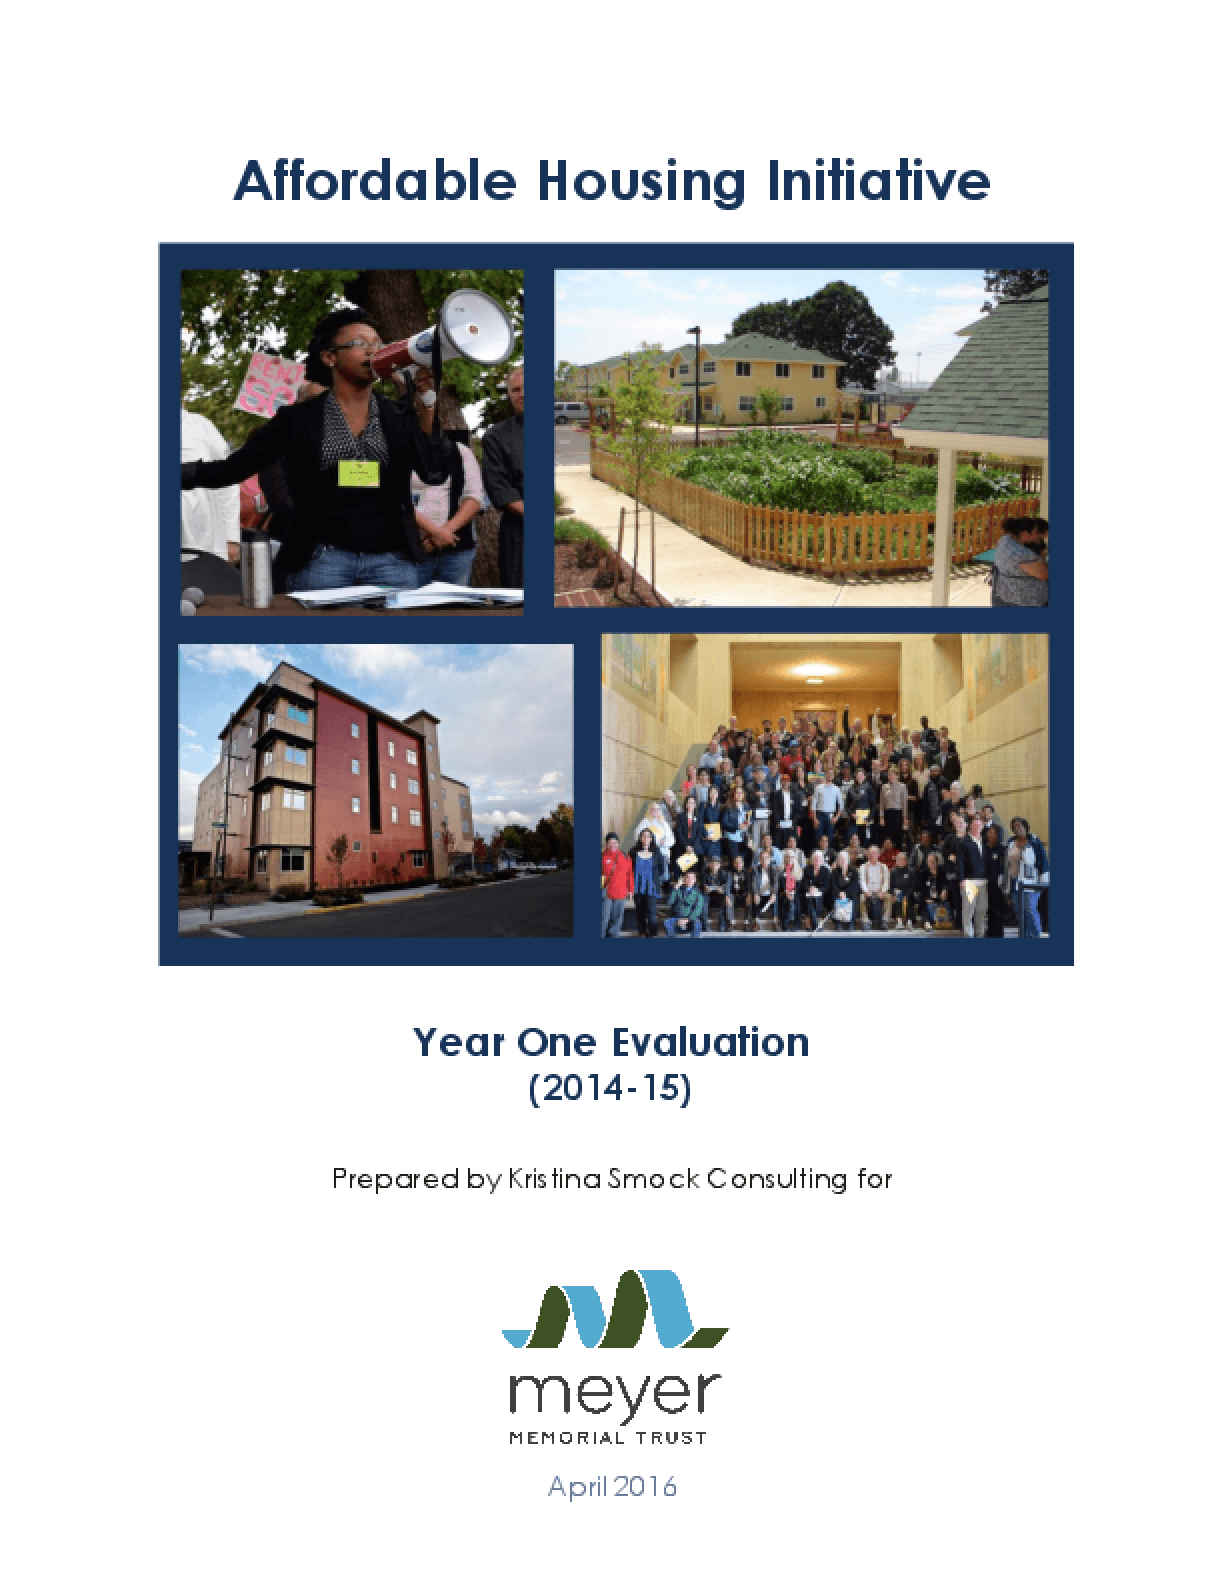 Affordable Houising Initiative: Year One Evaluation (2014-15)